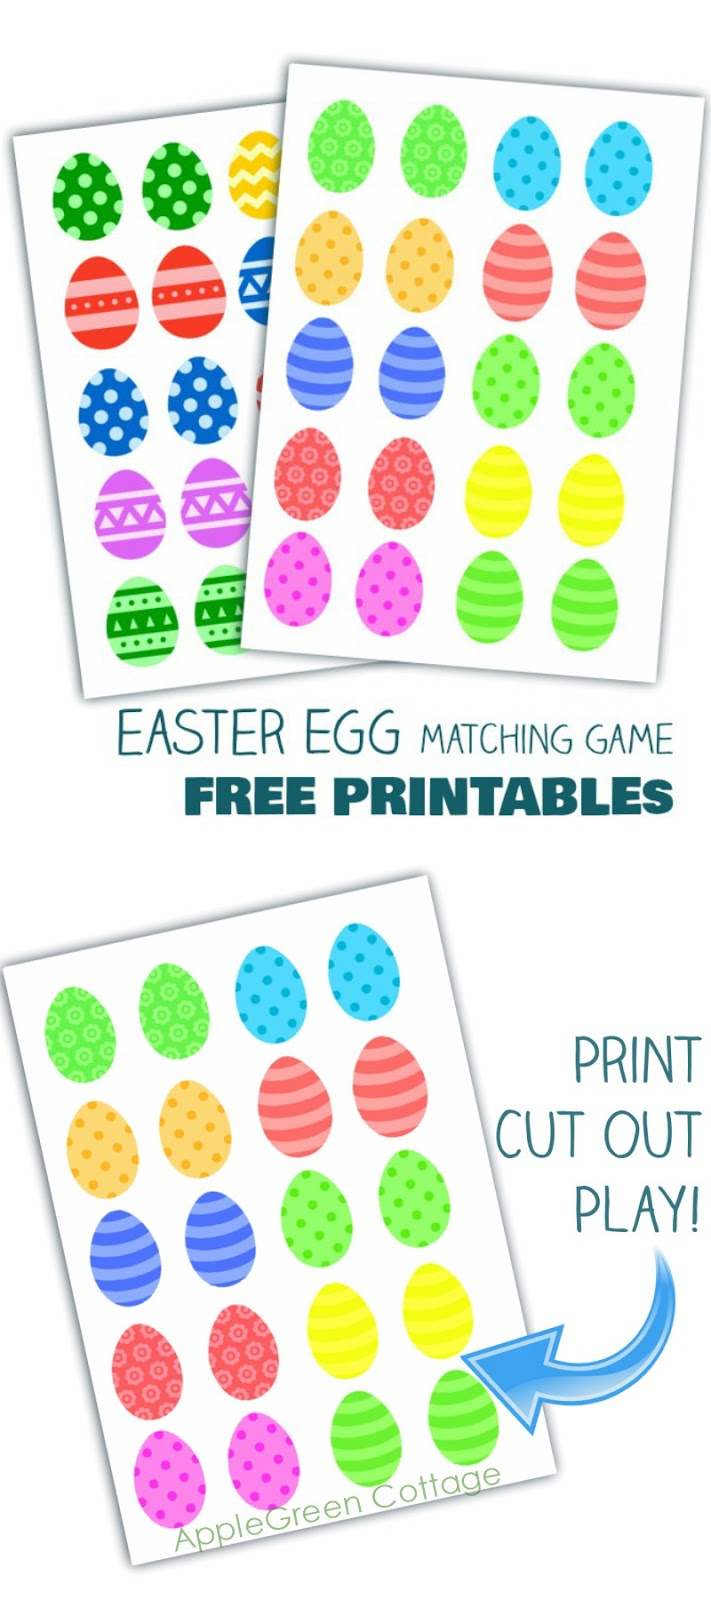 graphic regarding Resurrection Eggs Printable known as Easter Egg Matching Activity - Cost-free Printables - AppleGreen Cottage